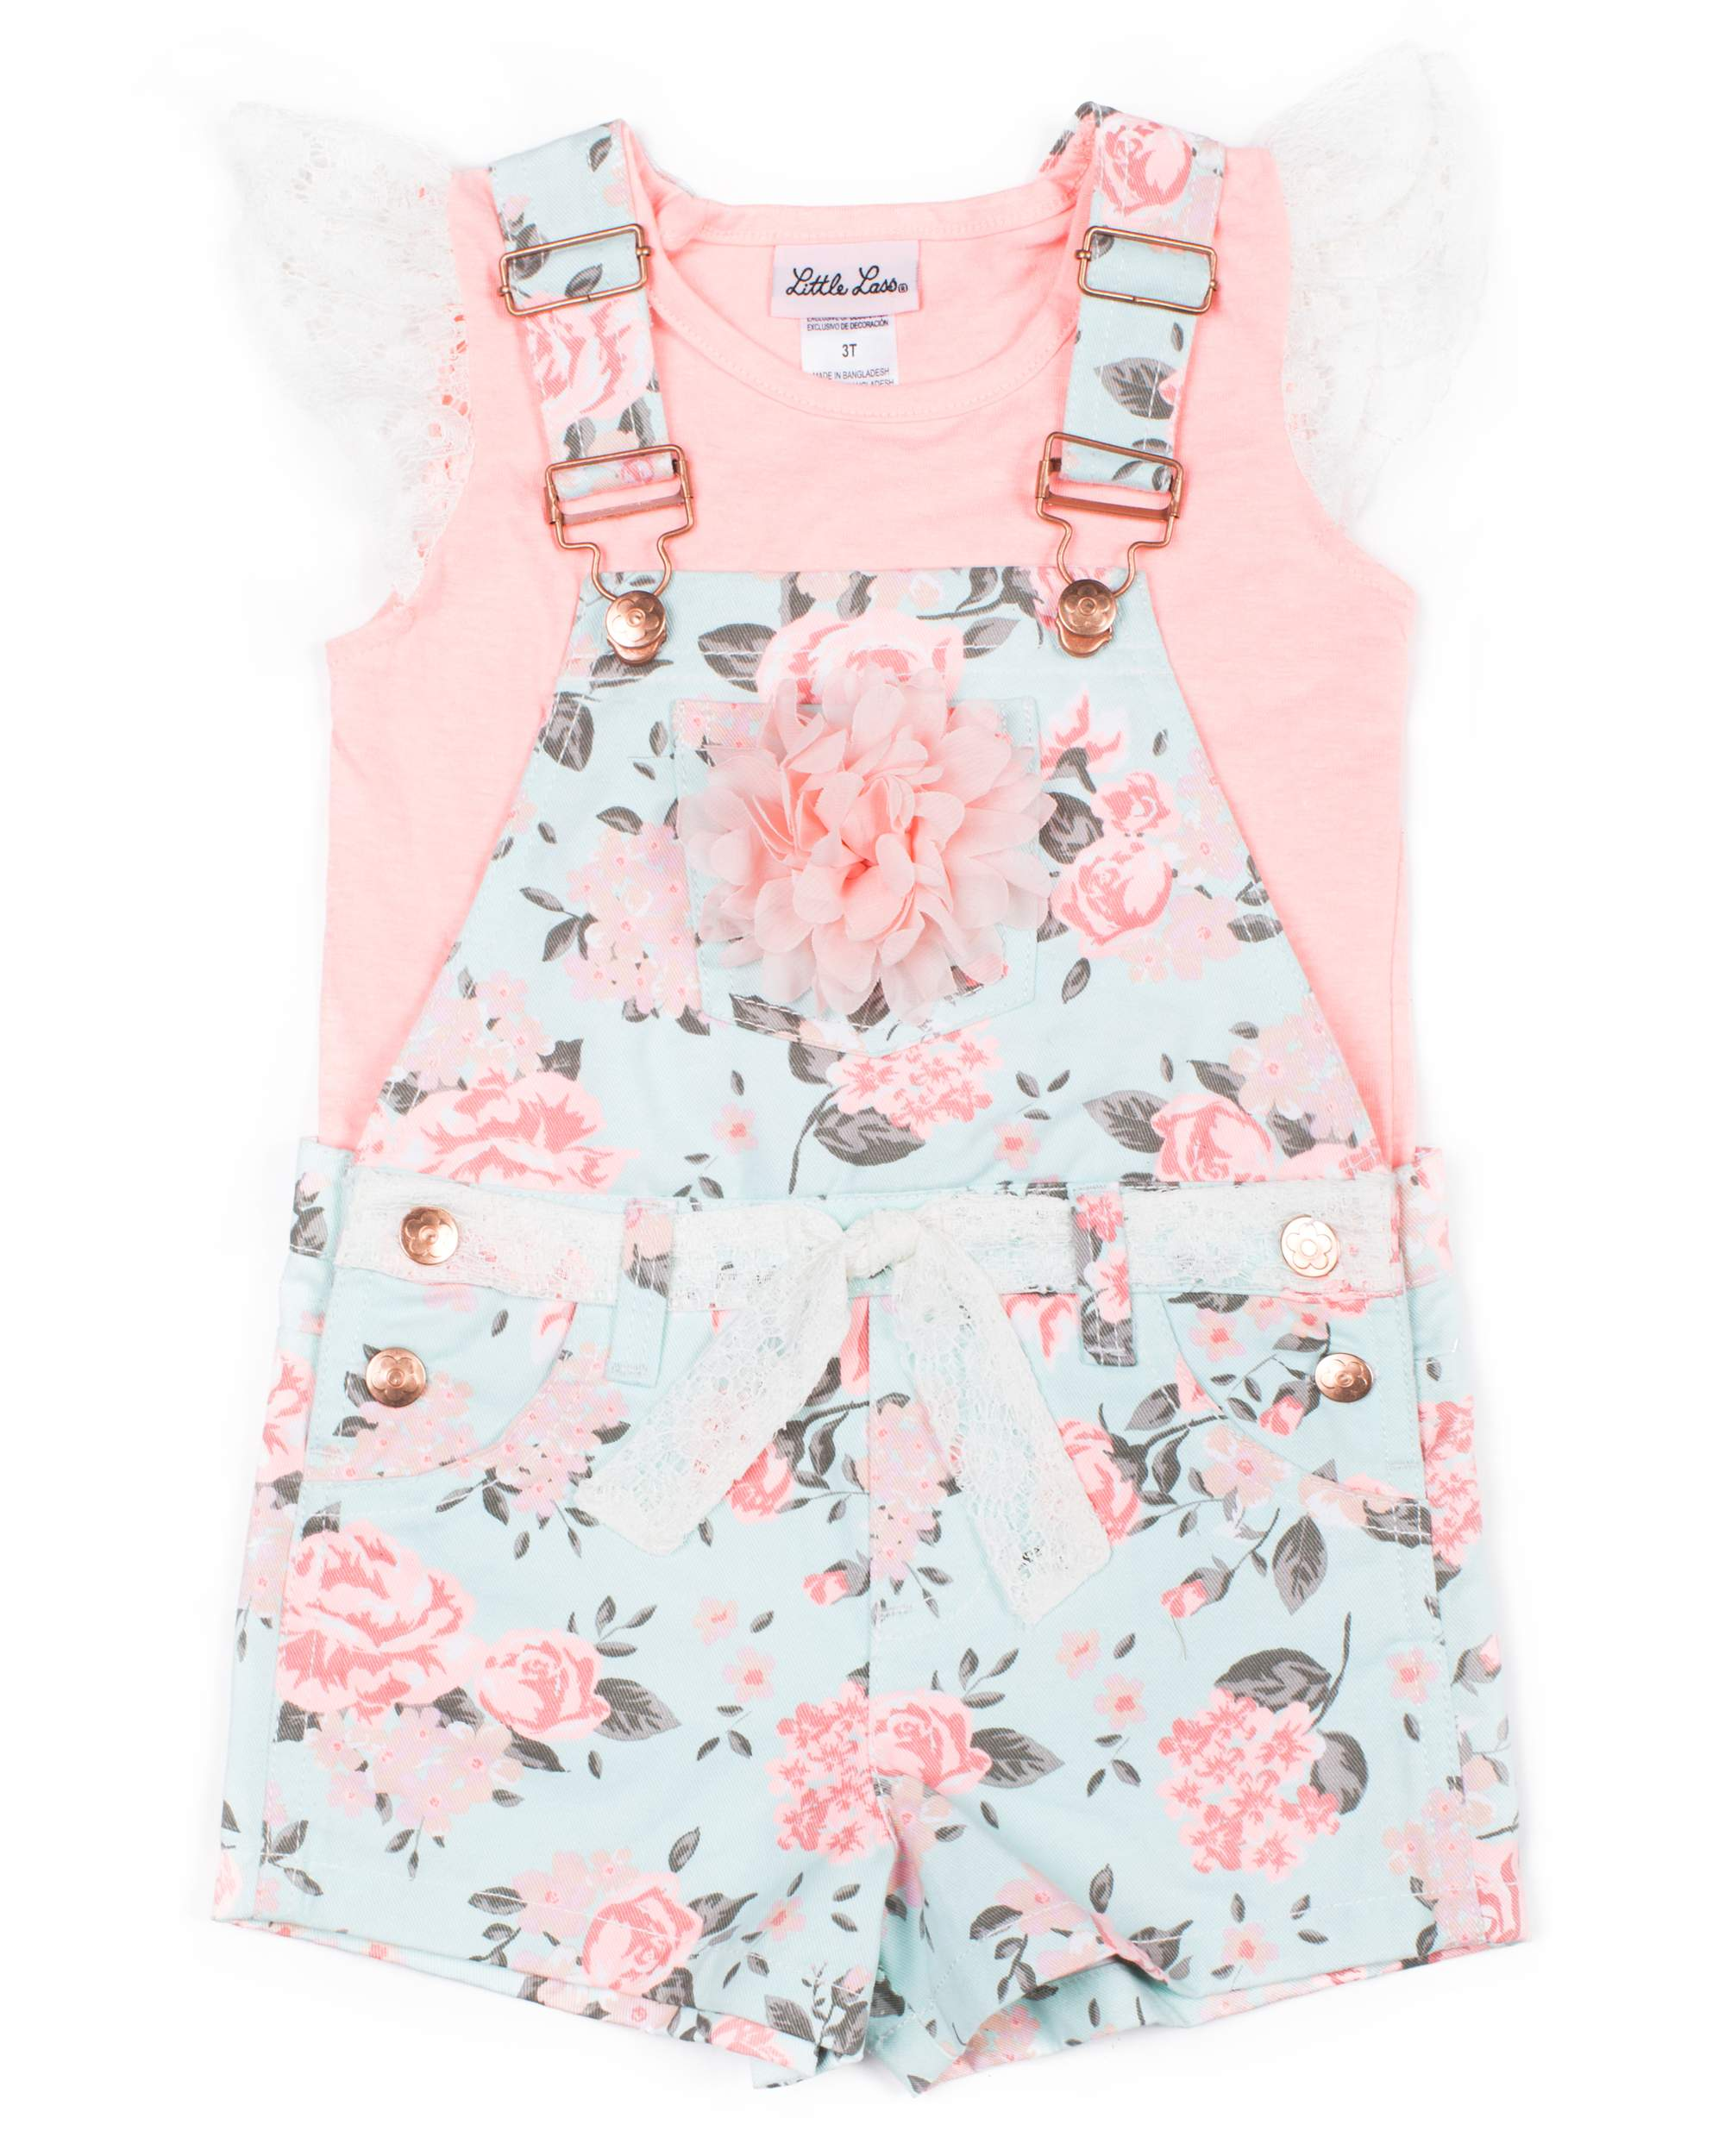 Floral Twill Shortall and Lace Tee, 2-Piece Outfit Set (Little Girls)